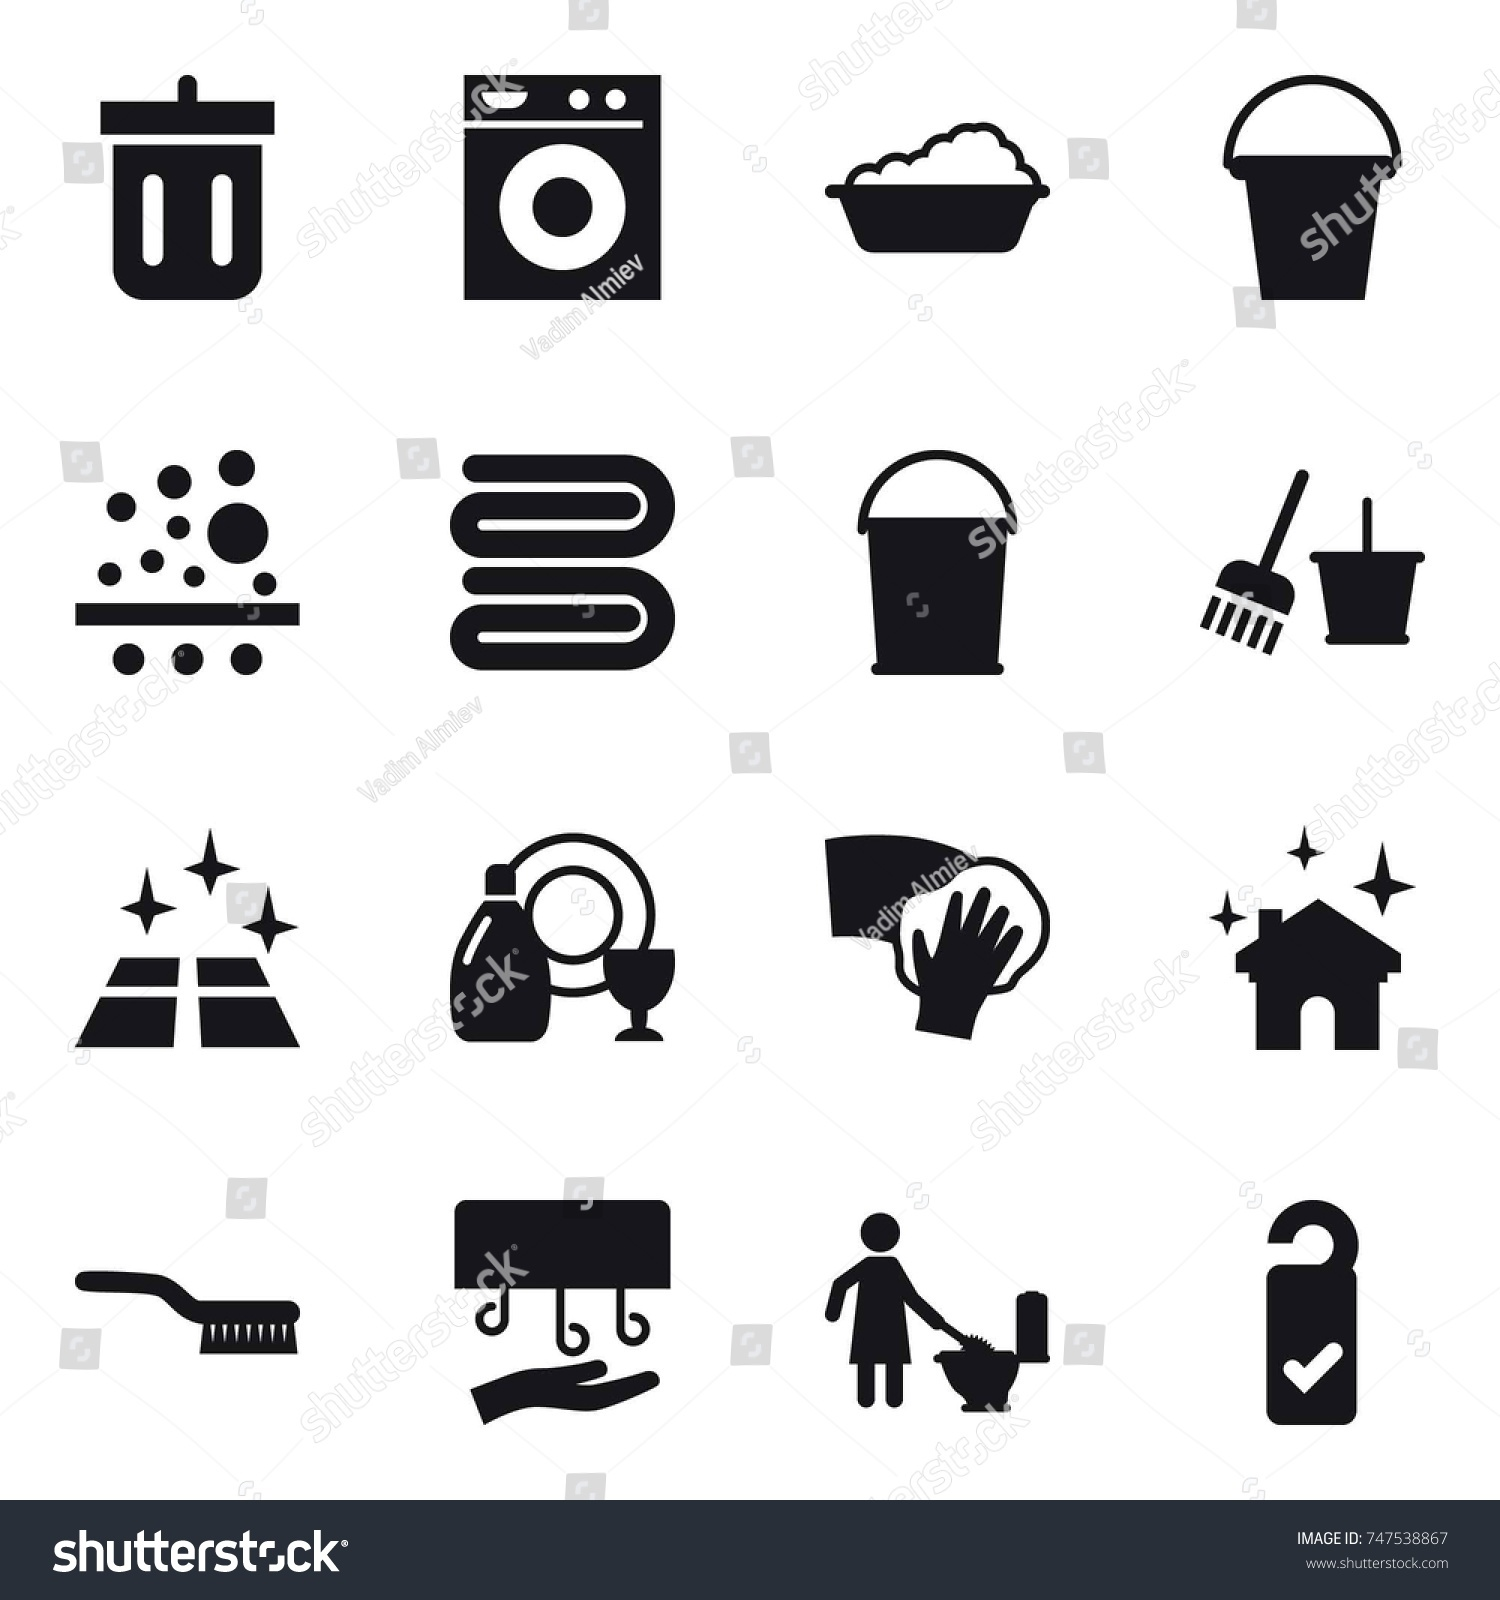 hight resolution of stock vector icon set bin washing machine washing bucket towel bucket and broom clean floor jpg